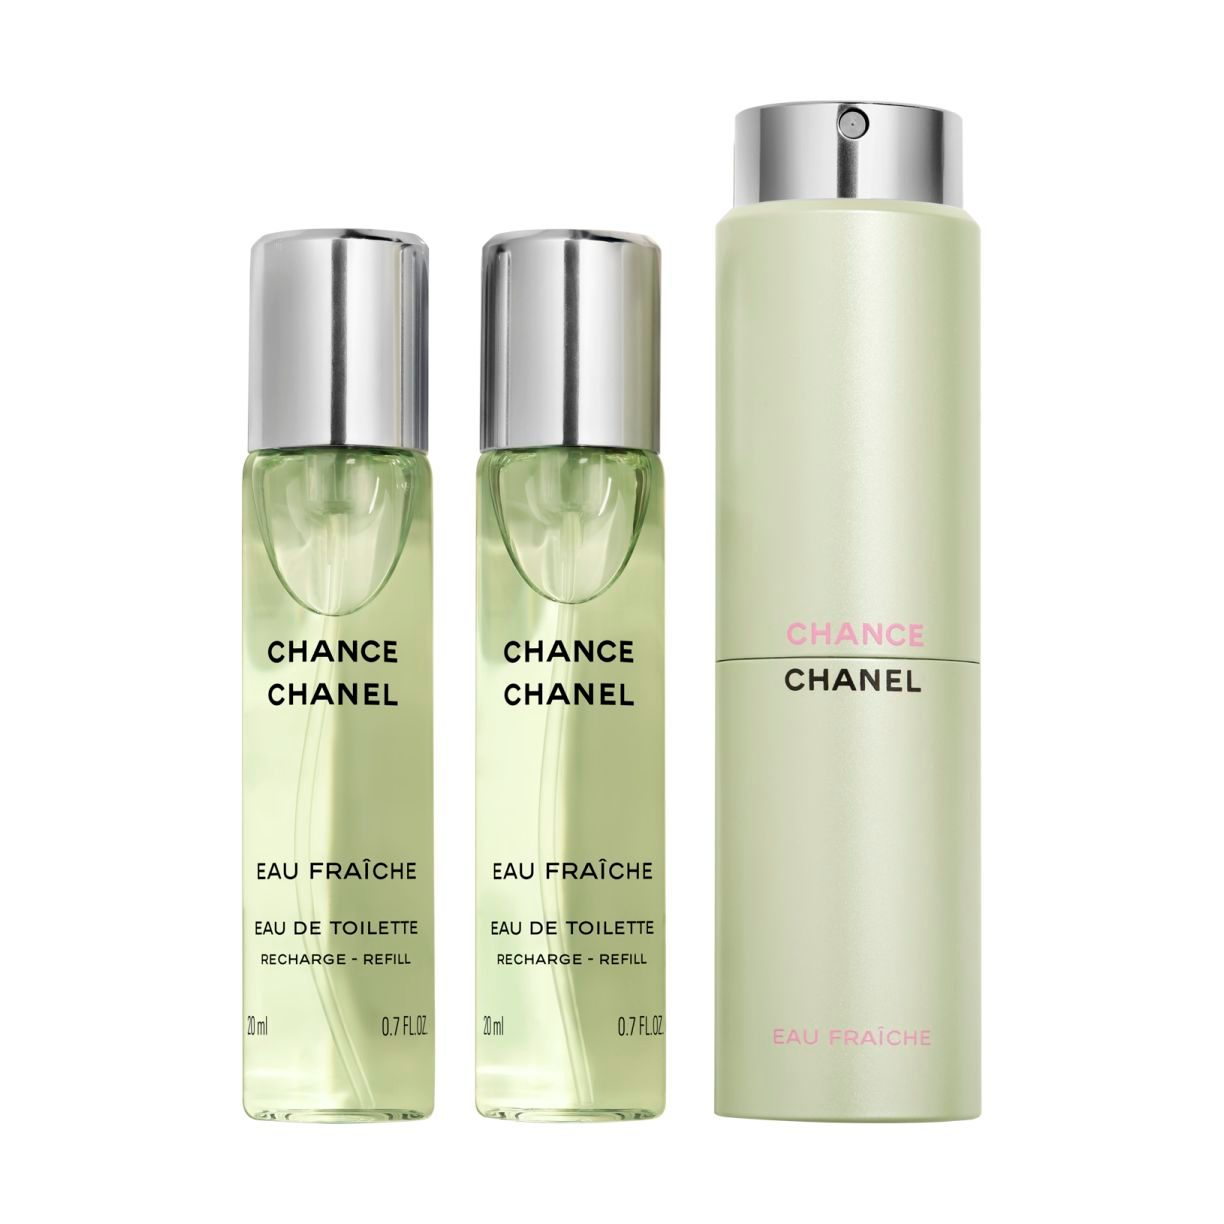 CHANCE EAU FRAÎCHE EAU DE TOILETTE TWIST AND SPRAY 3x20ml